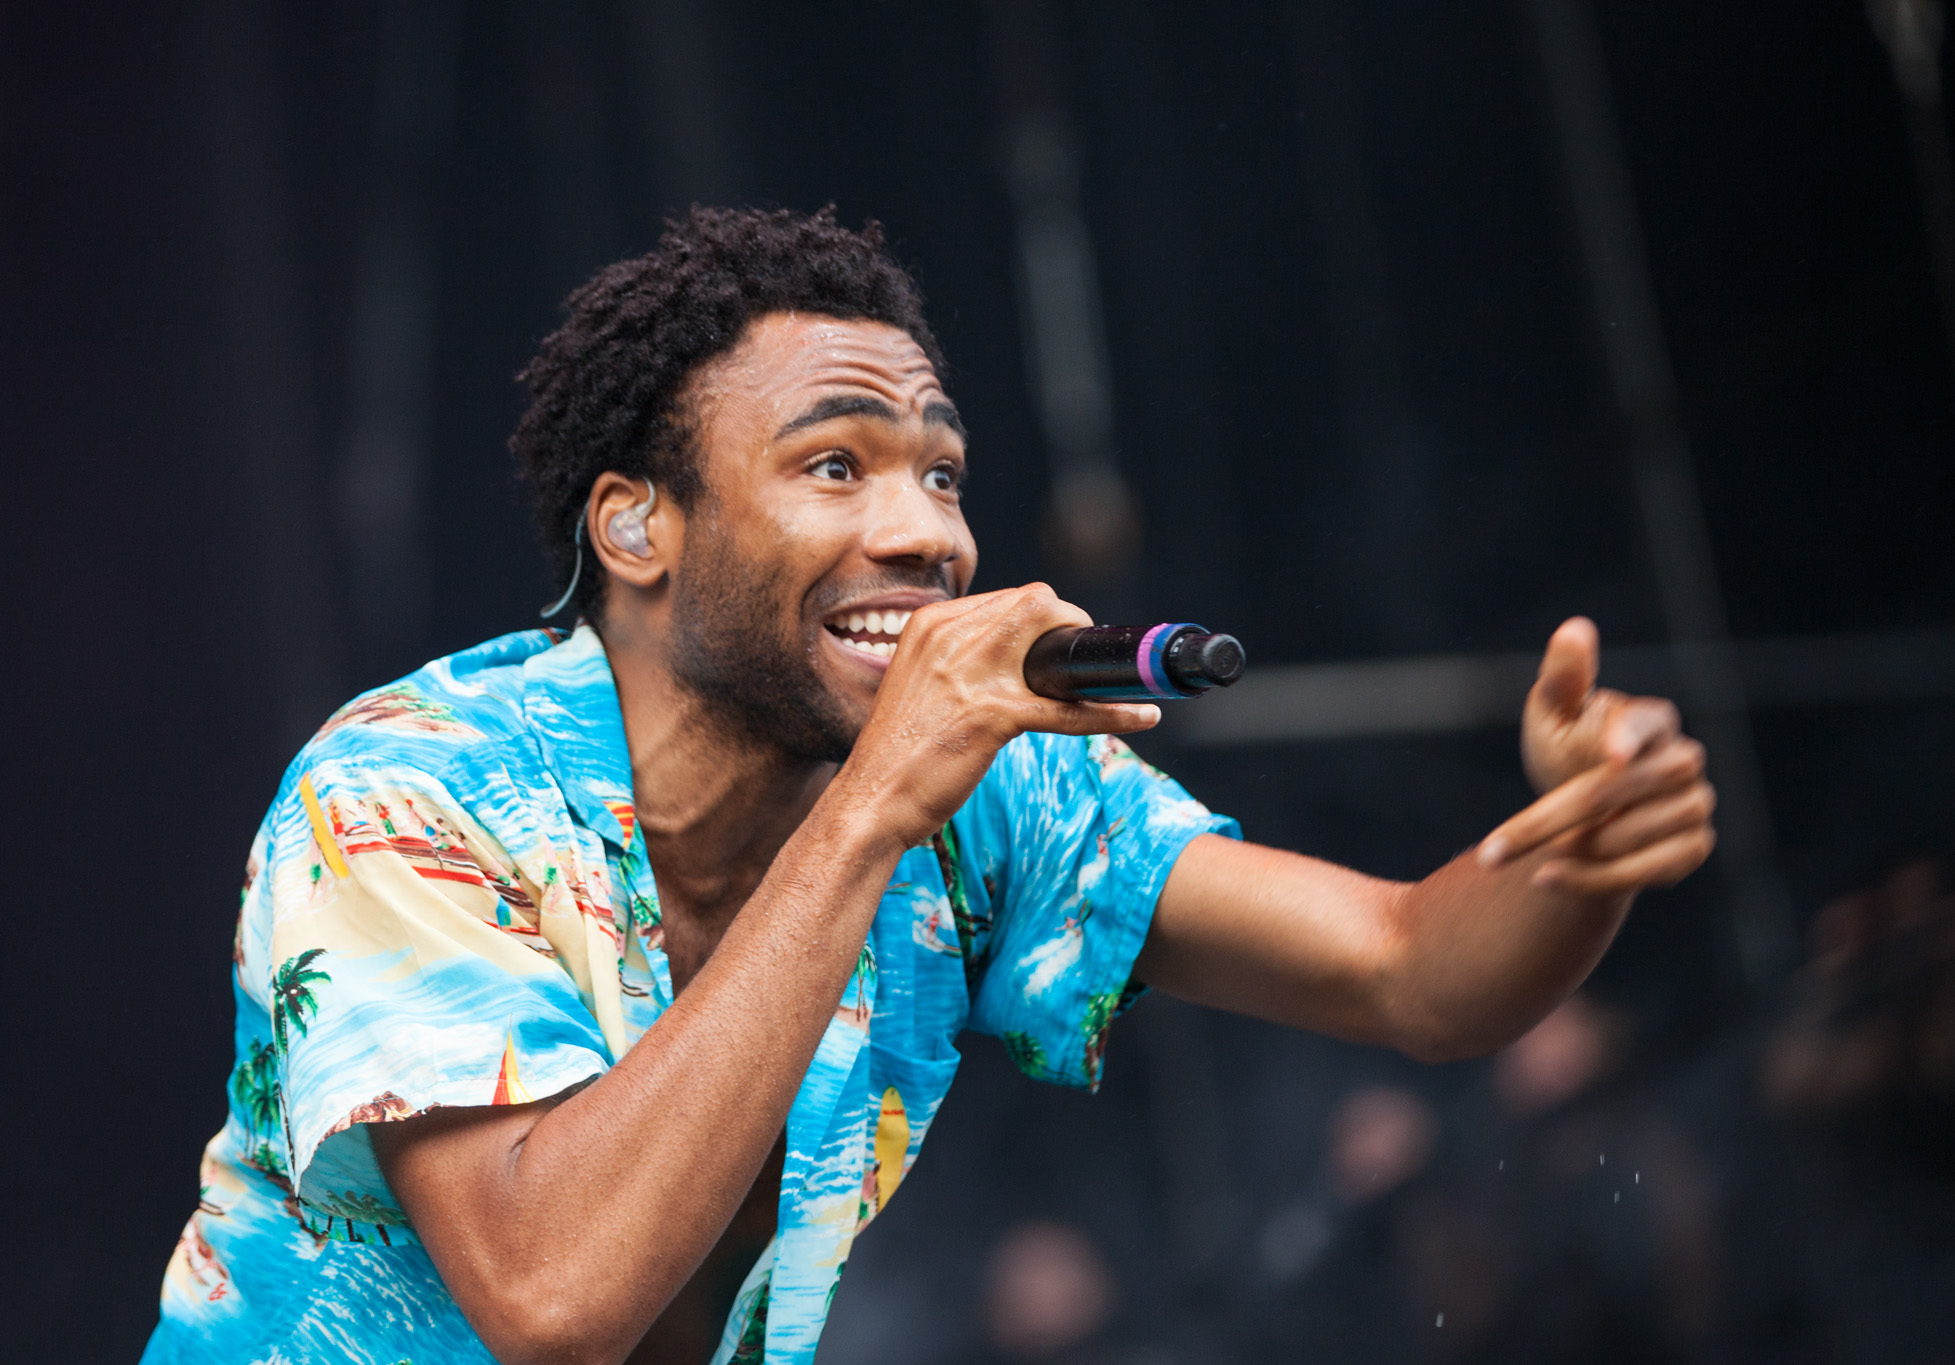 Childish Gambino hits the stage in Grant Park to play a sold-out Lollapalooza Music Festival 2014.